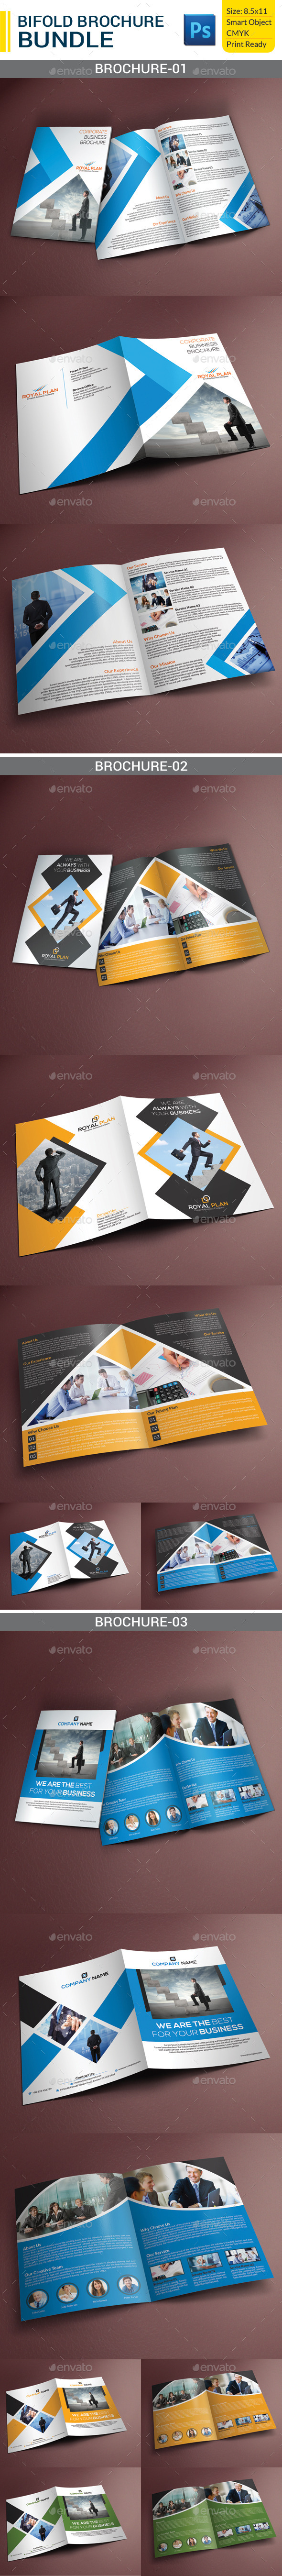 GraphicRiver Corporate Bifold Brochure Bundle 9382206